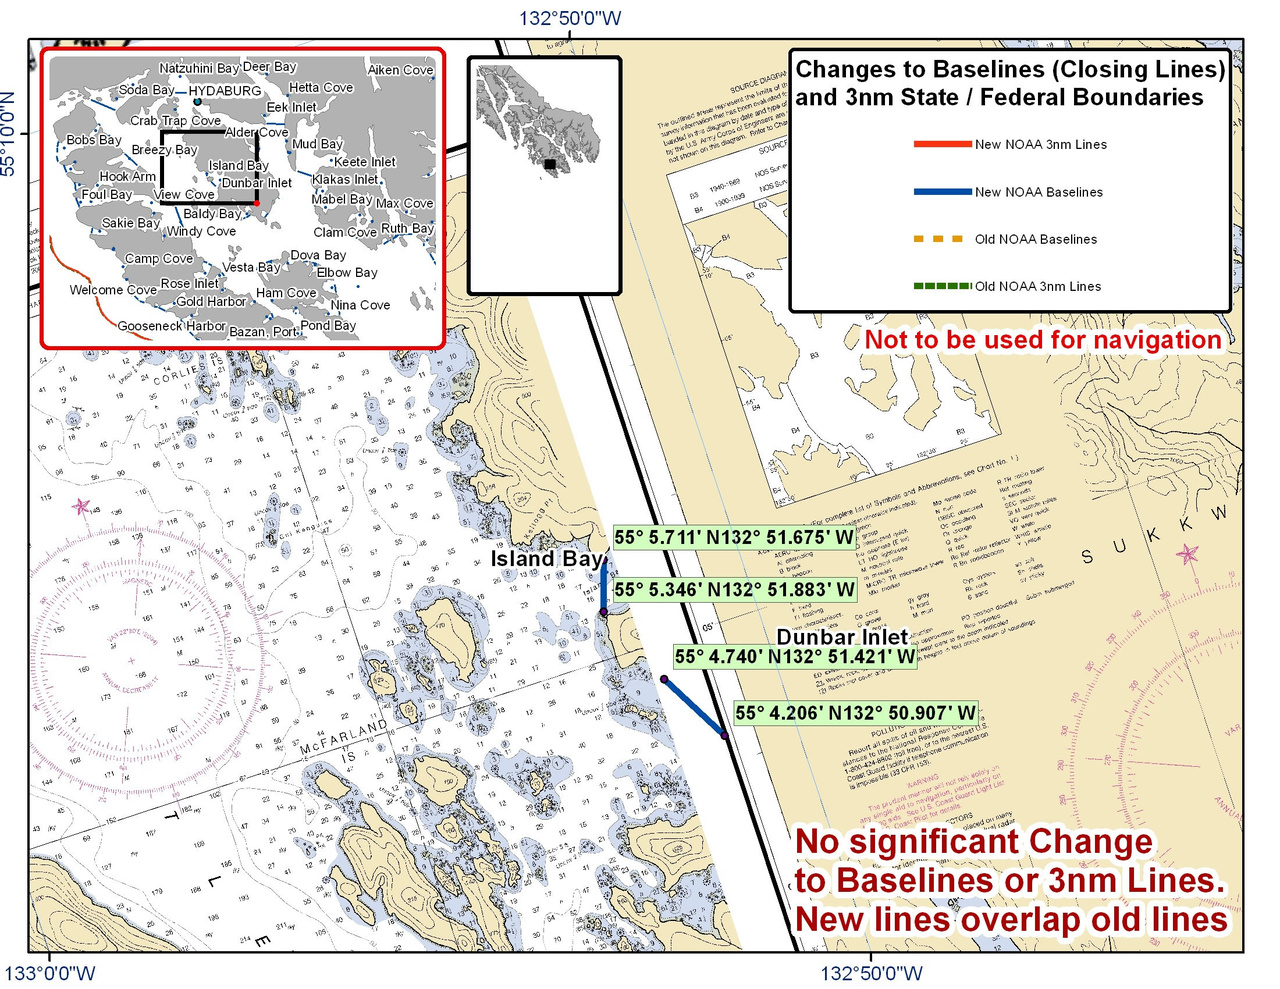 Chart for Island Bay and Dunbar Inlet